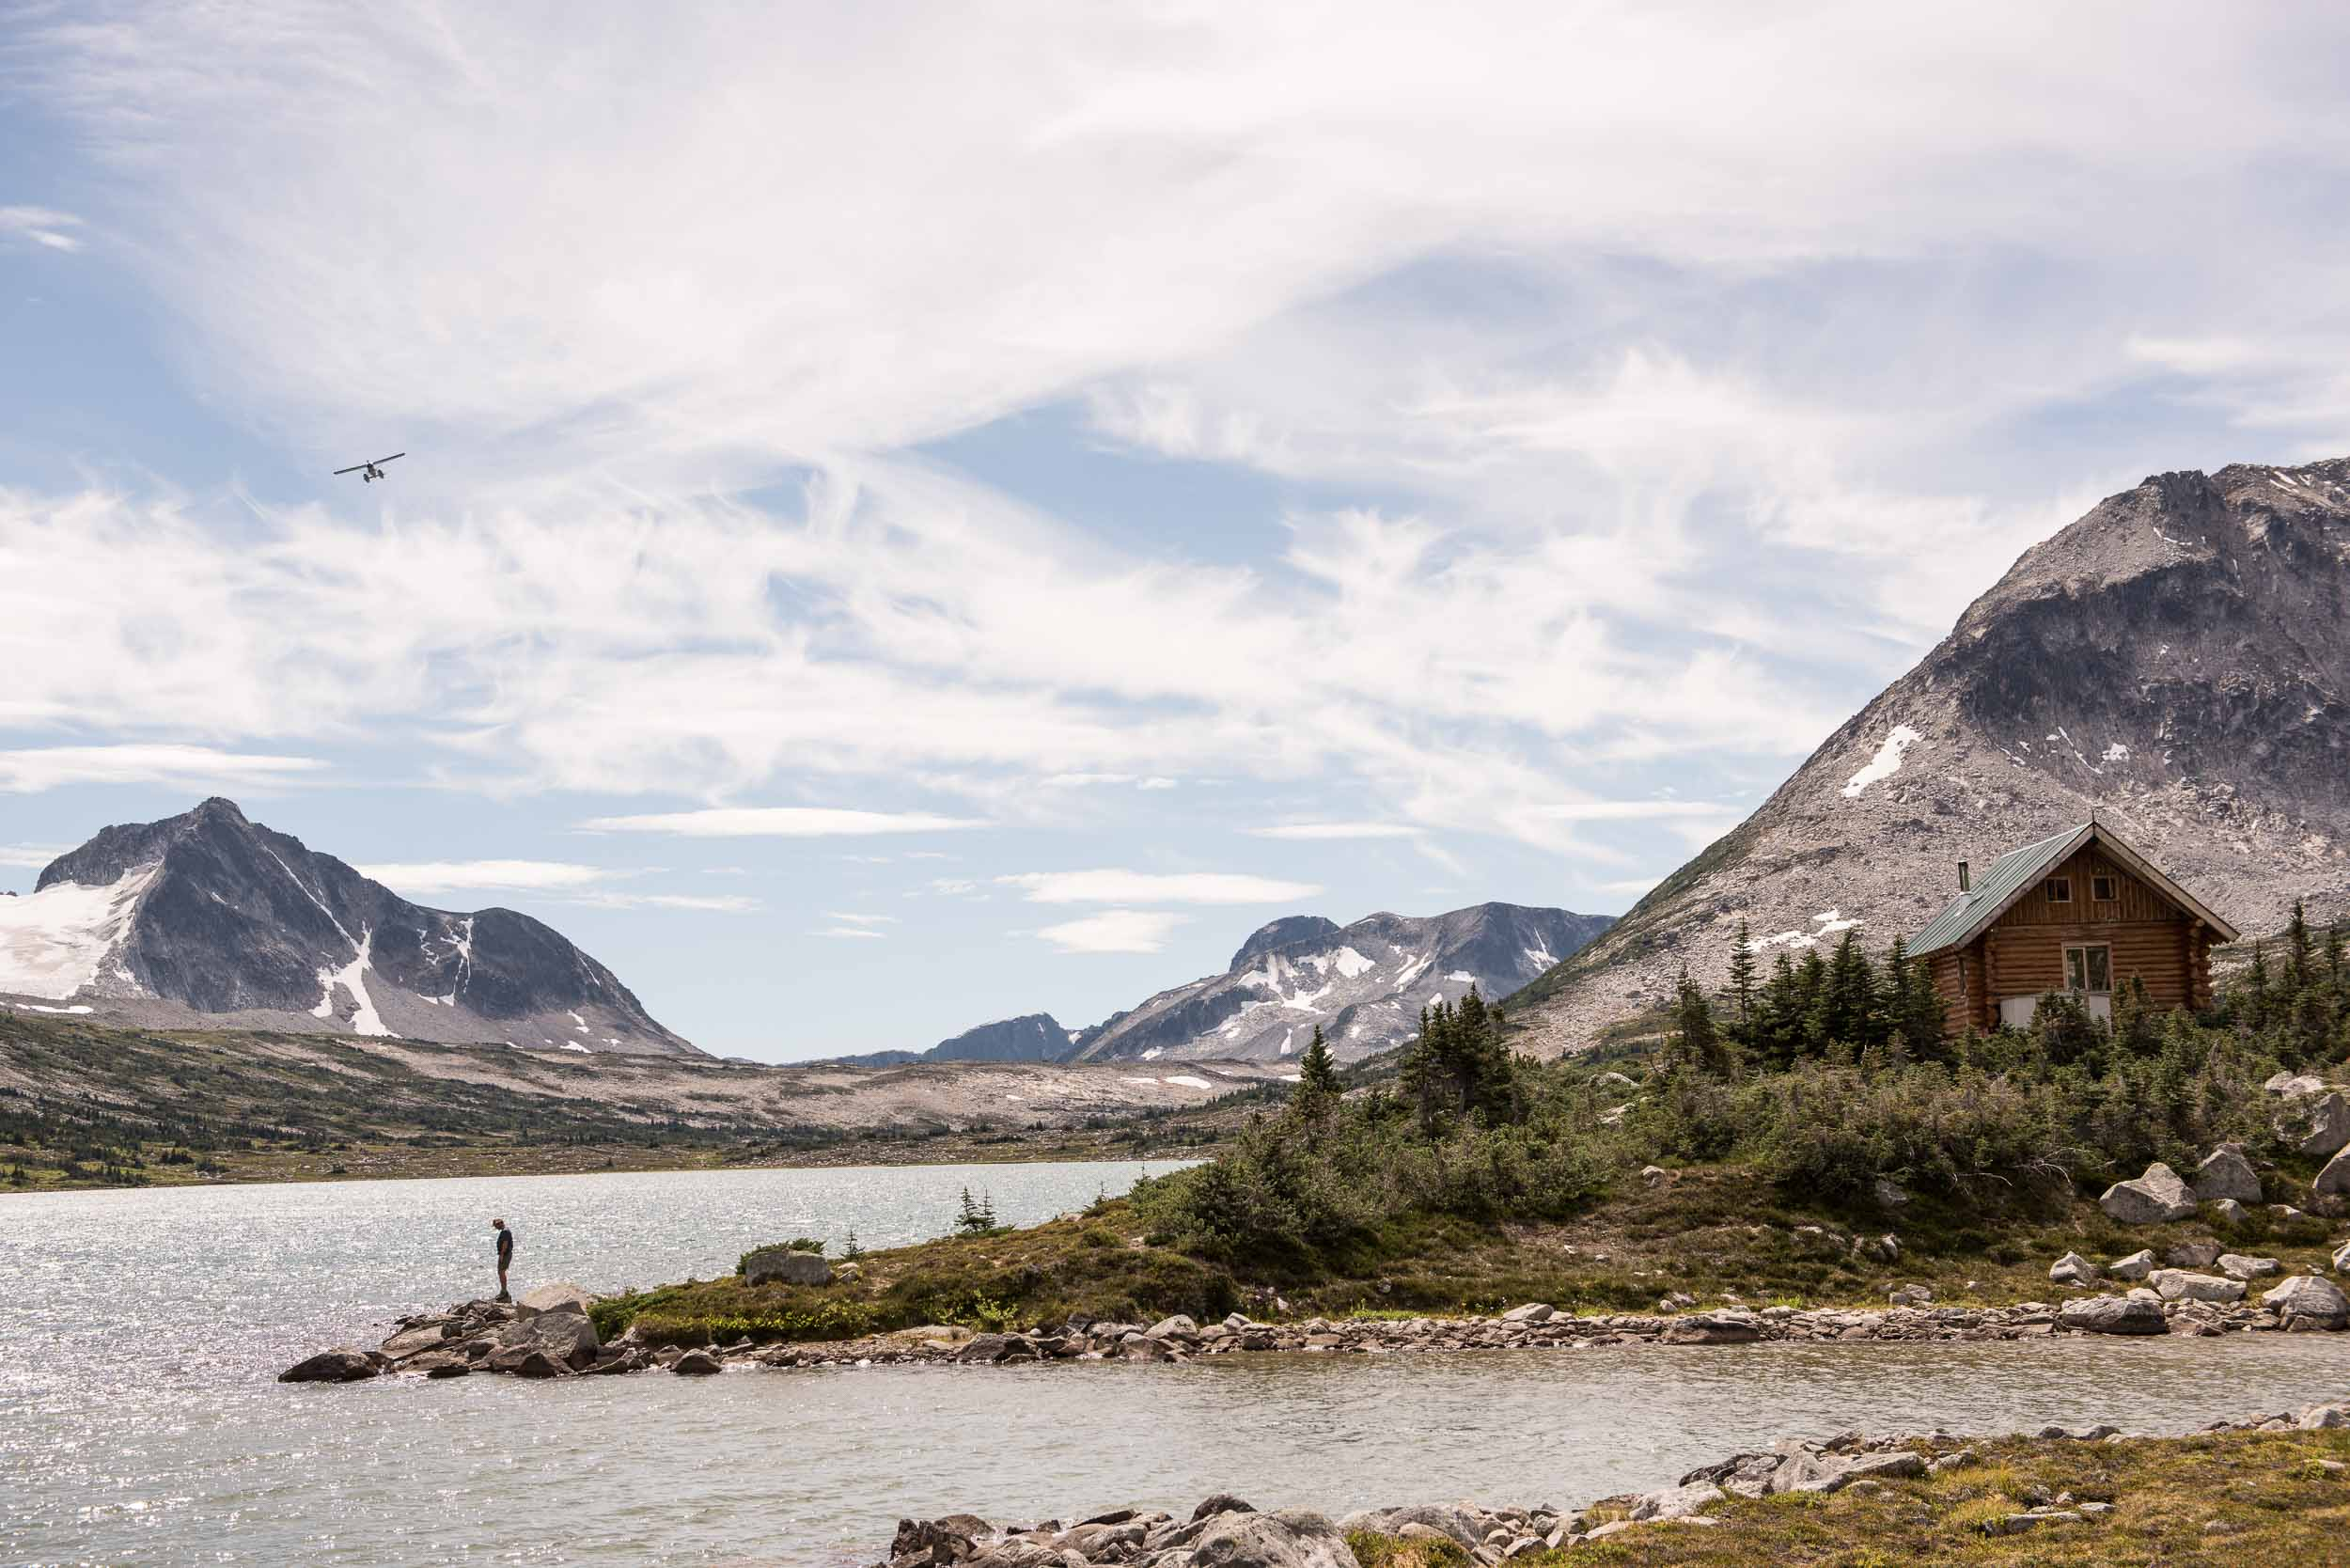 A hiker waiting for a airplane on the shores of Wilderness Lake. Credit: Destination BC/Kari Medig